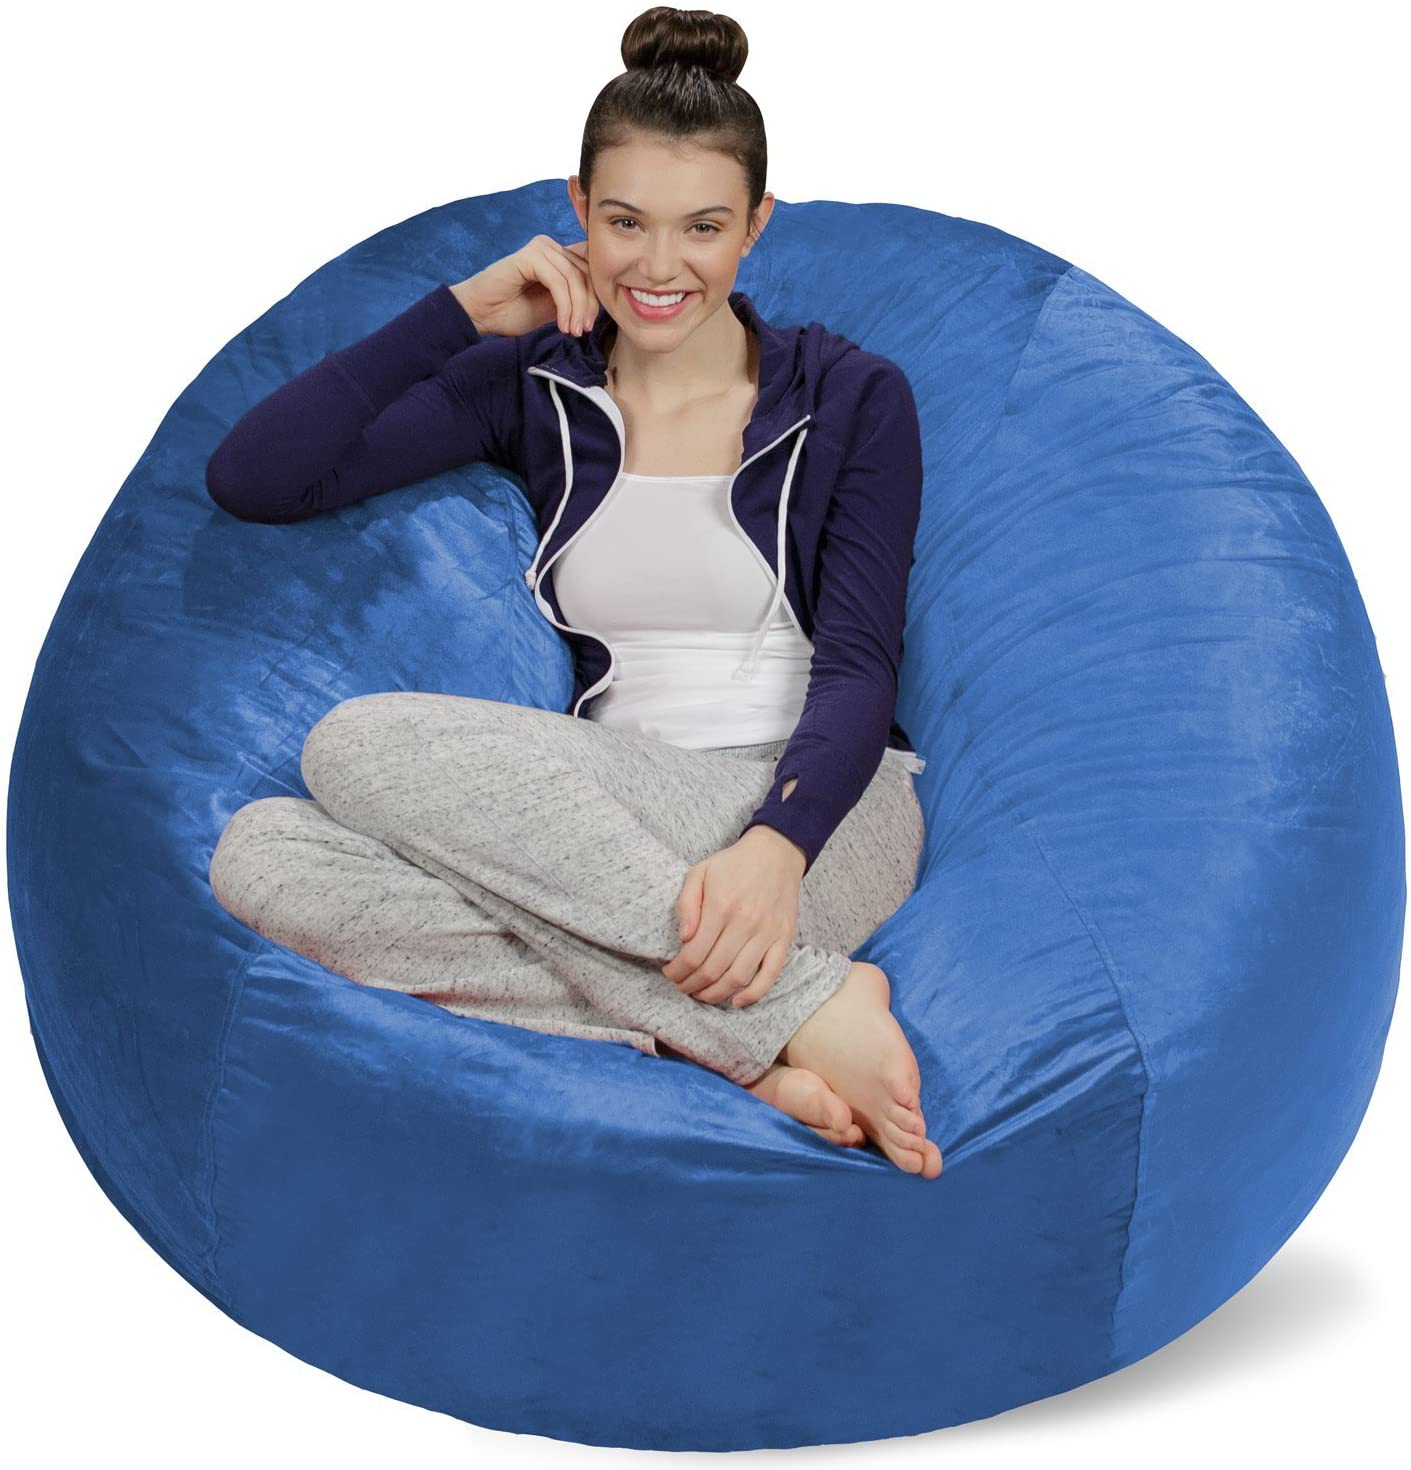 Top 7 Best Luxury Bean Bag Chairs for Adults [Top Picks 2021] 4